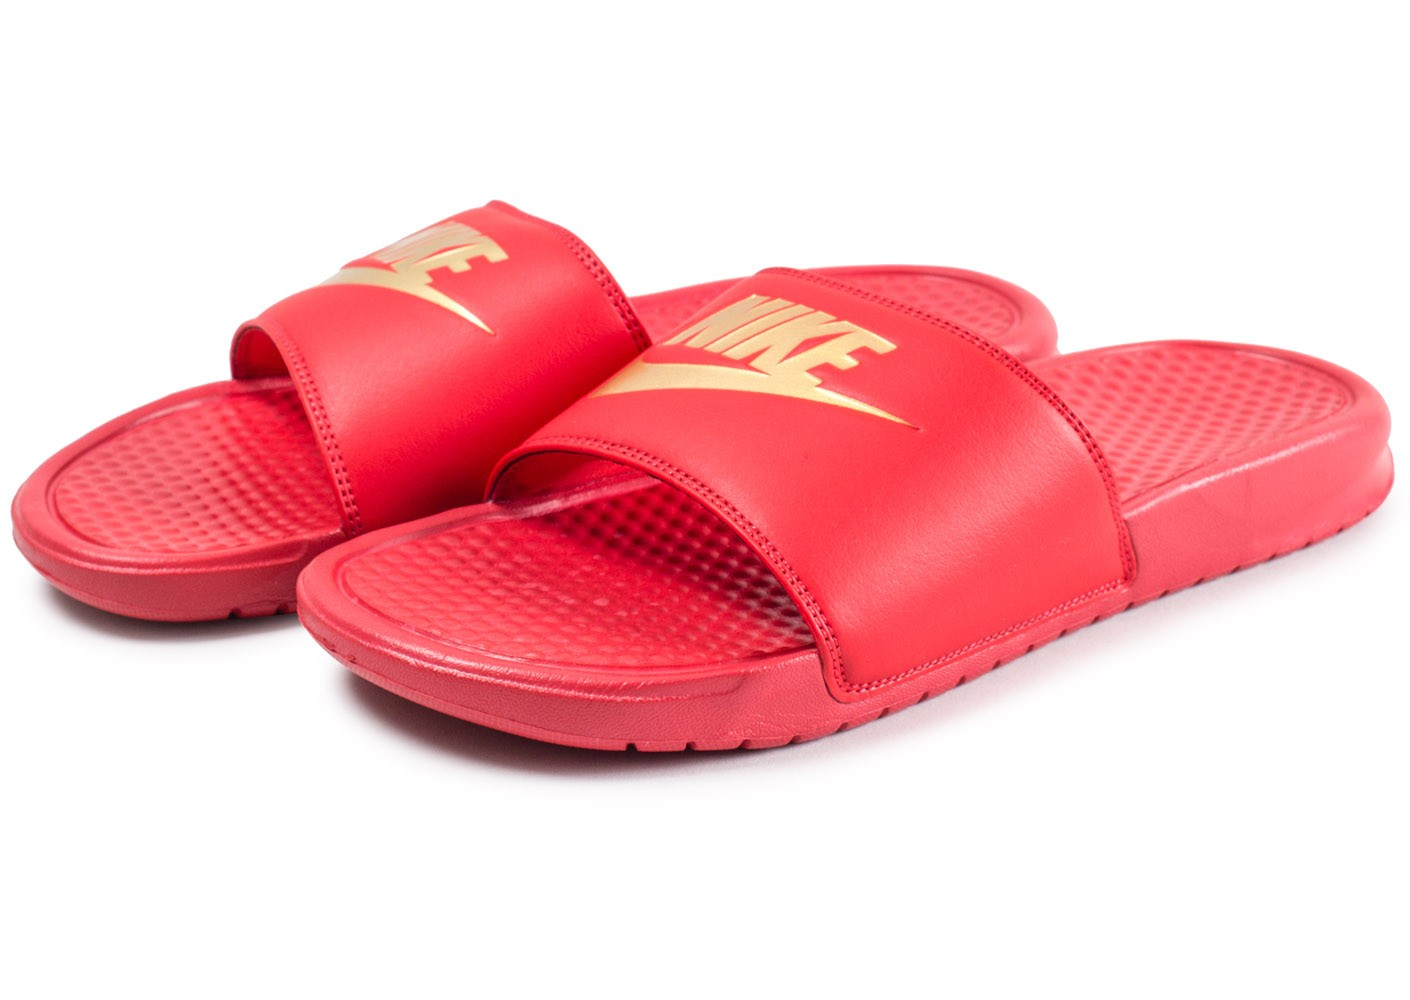 online retailer f4a2f 8e31a ... Chaussures Nike Sandales Benassi Just Do It rouge et or vue intérieure  ...